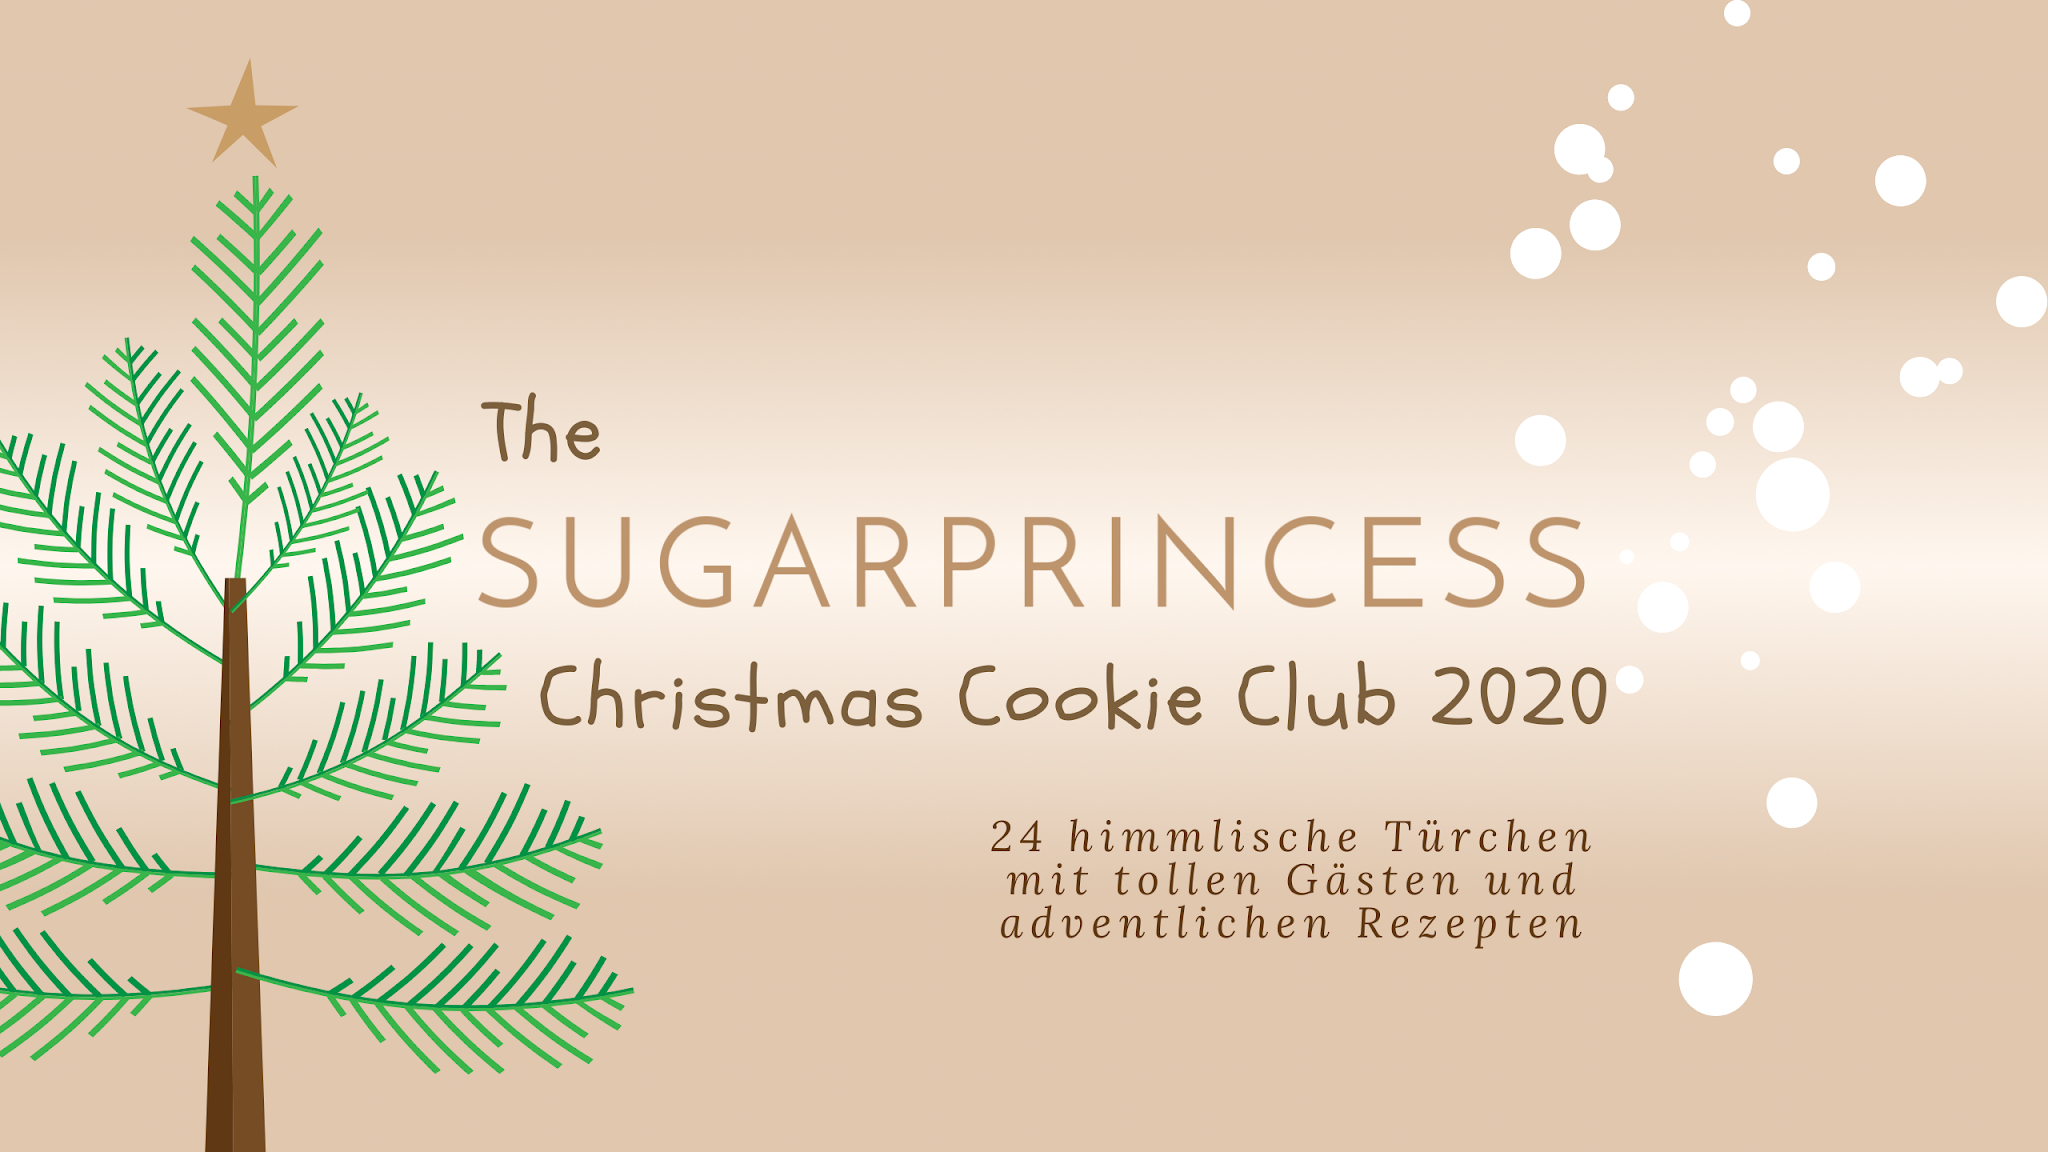 Sugarprincess Christmas Cookie Club 2020